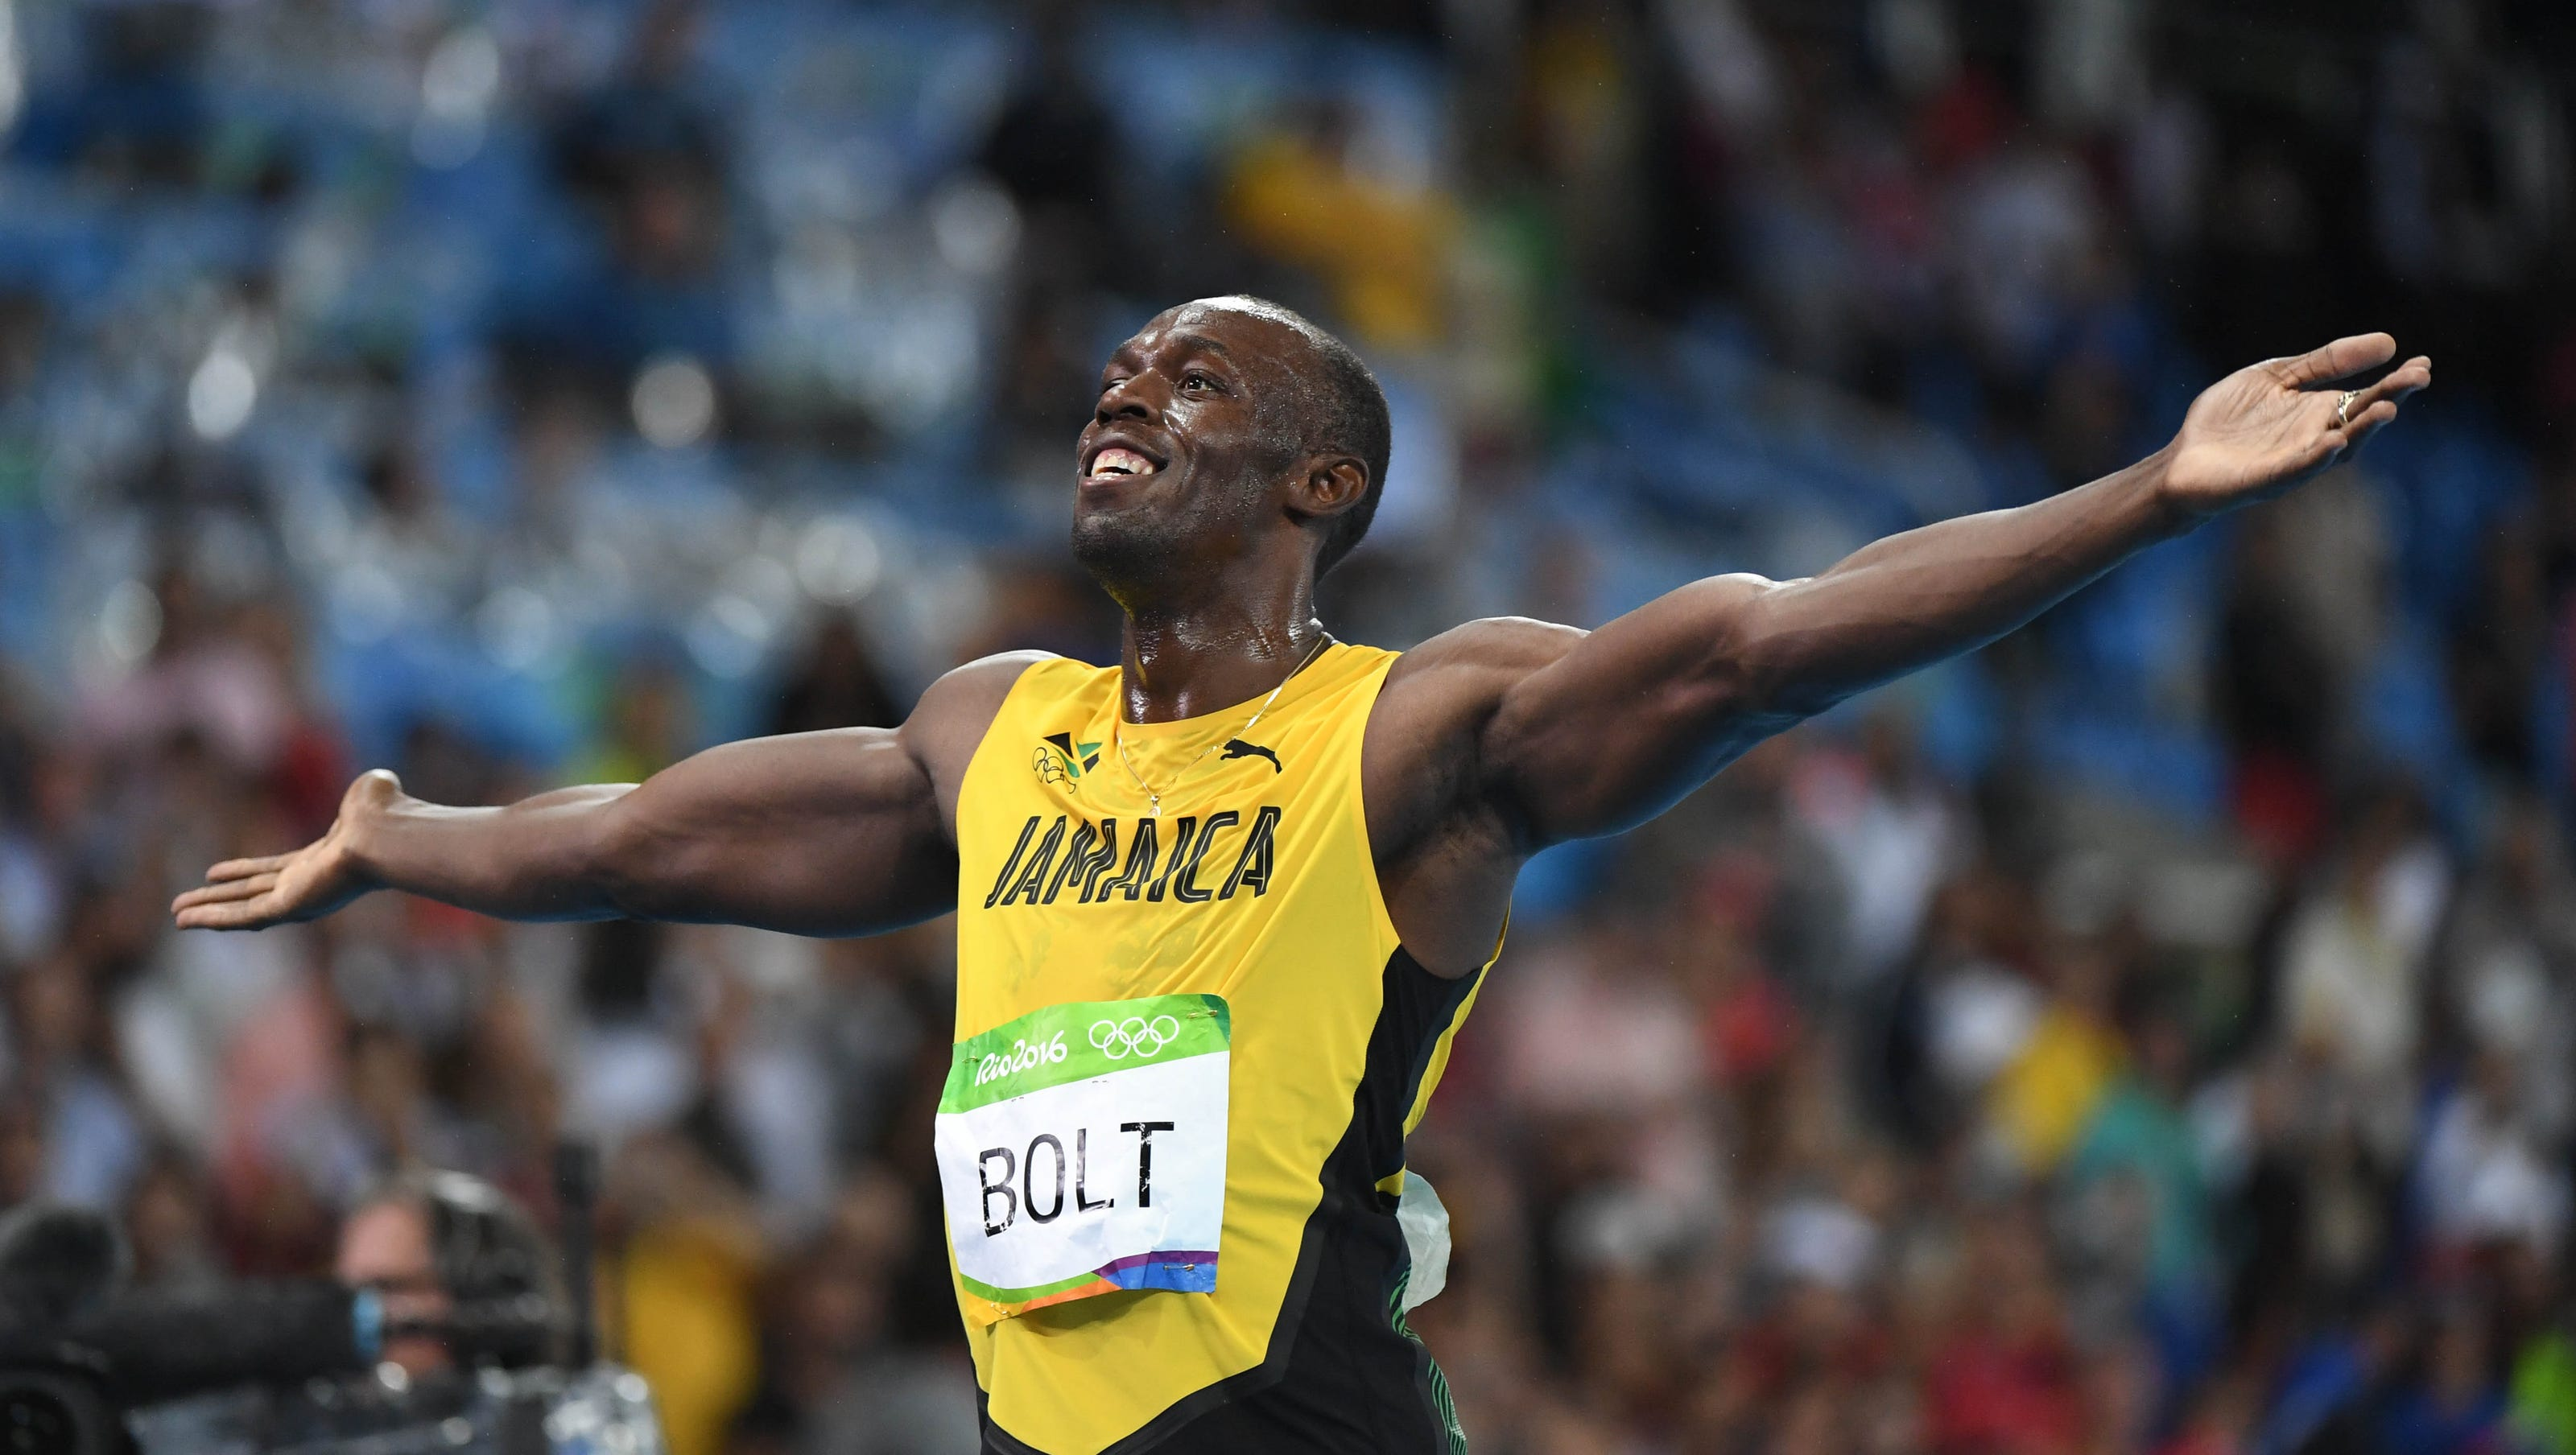 Looking back at Usain Bolt's individual Olympic gold medals